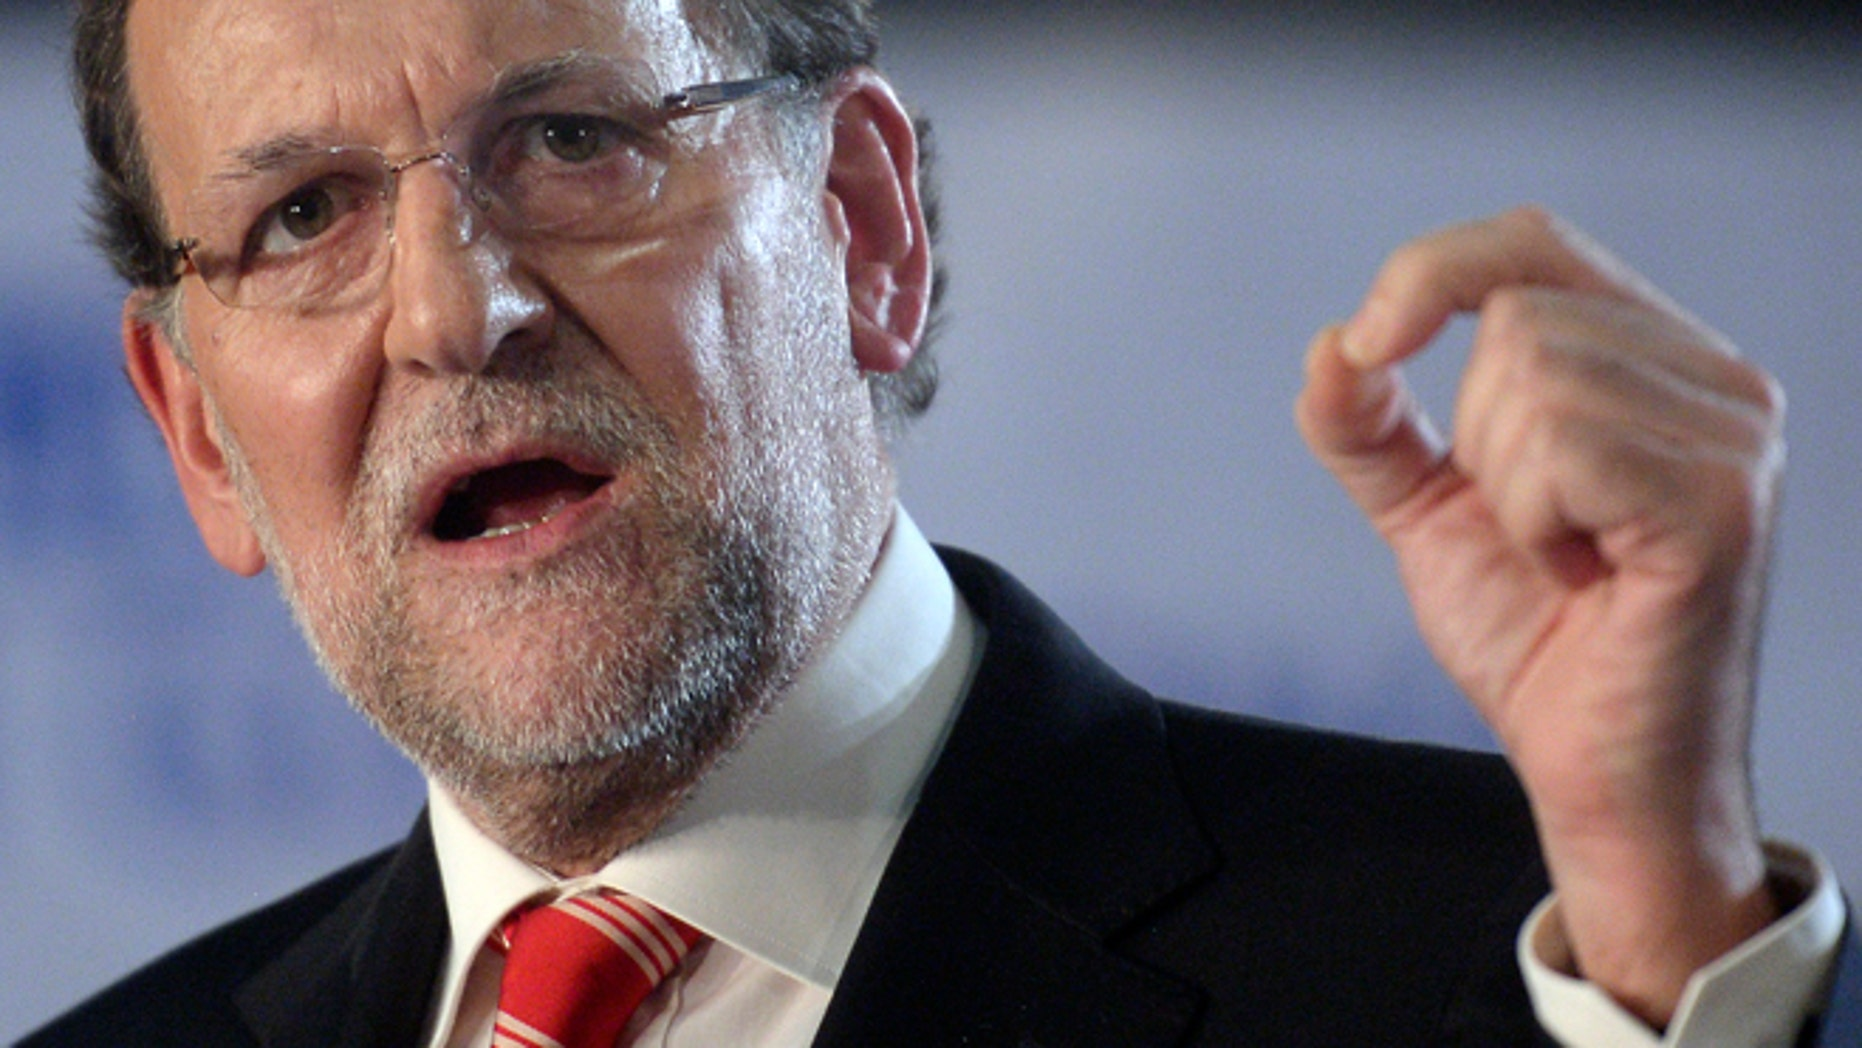 """Spain's Prime Minister Mariano Rajoy gestures during his speech in Barcelona, Spain, Saturday, Nov. 29, 2014. Spains prime minister has visited the northern region of Catalonia 20 days after its government held an informal, nonbinding poll asking residents if they favored splitting from Spain. Rajoy, who was surrounded by many of his Cabinet ministers, said two-thirds of Catalans had not turned out to vote in the consultation and that the regional governments international propaganda operation had fallen apart noiselessly and without clatter"""". Catalan officials said out of 6.3 million potential voters, 2.3 million cast ballots, with most favoring secession. (AP Photo/Manu Fernandez)"""